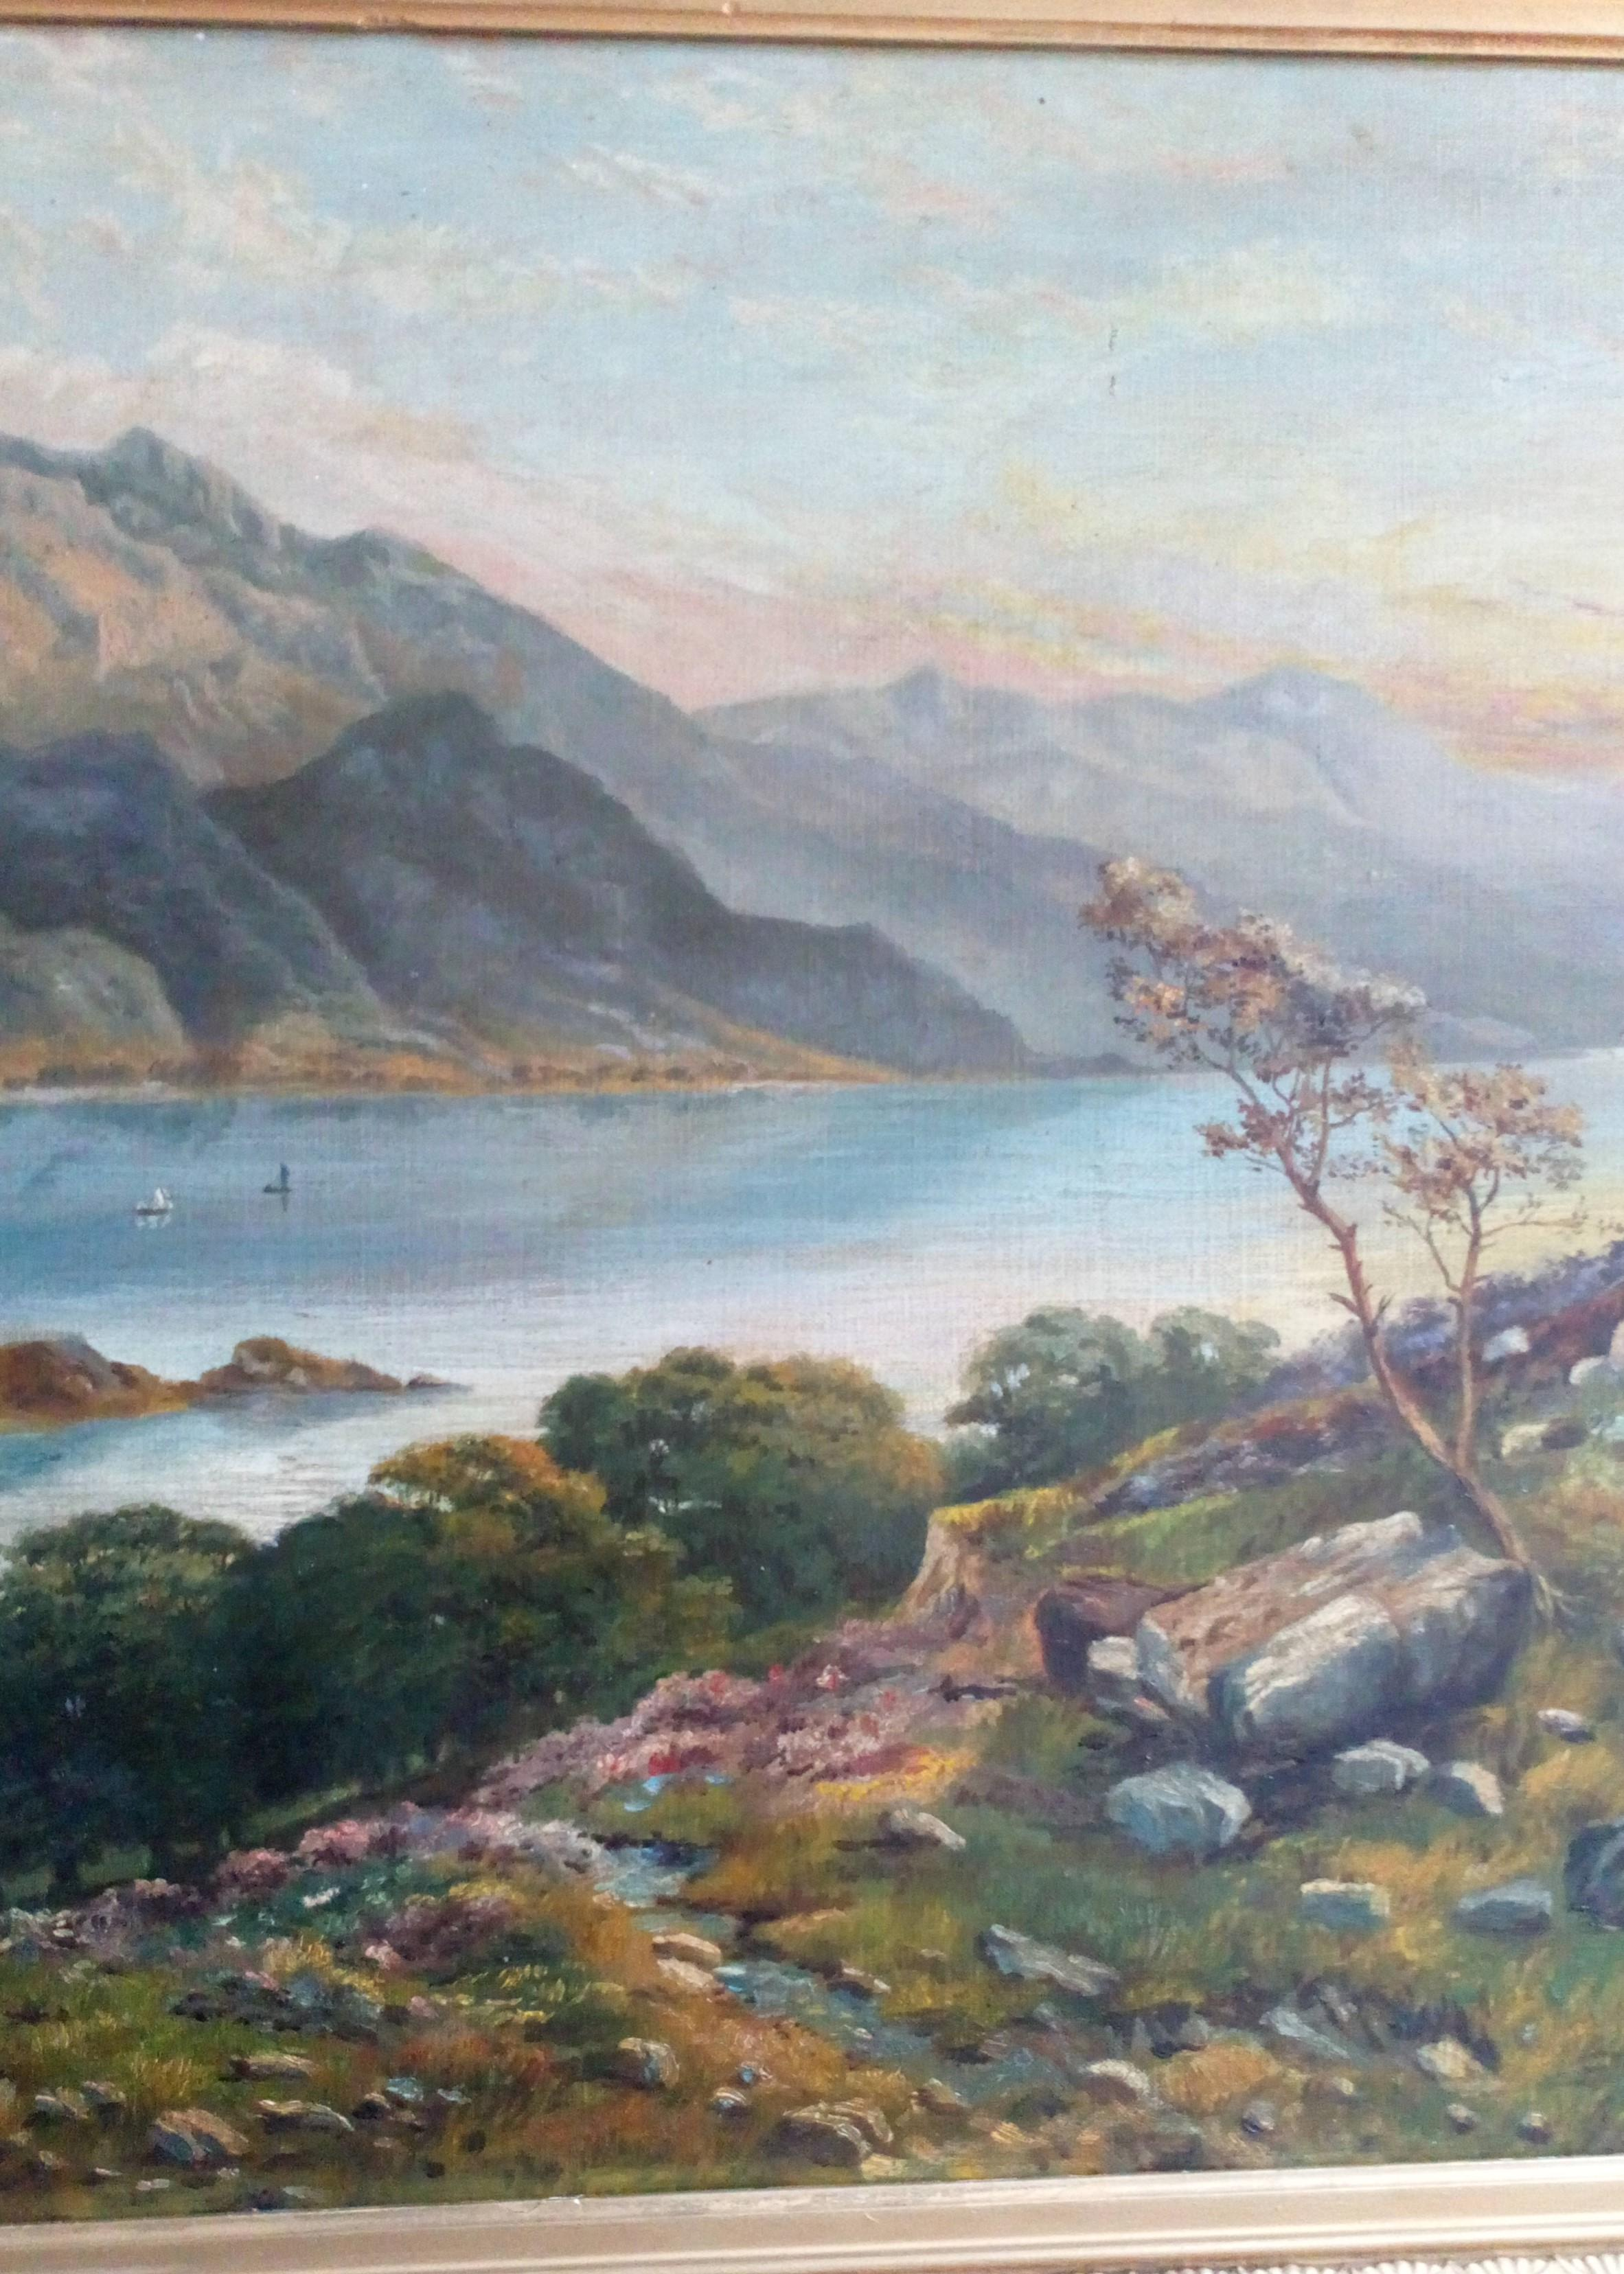 Antique Victorian Oil Painting of European Lake and Mountain Landscape Scene Monogram GKM Dated 1873 Possibly Lake Walen Switzerland